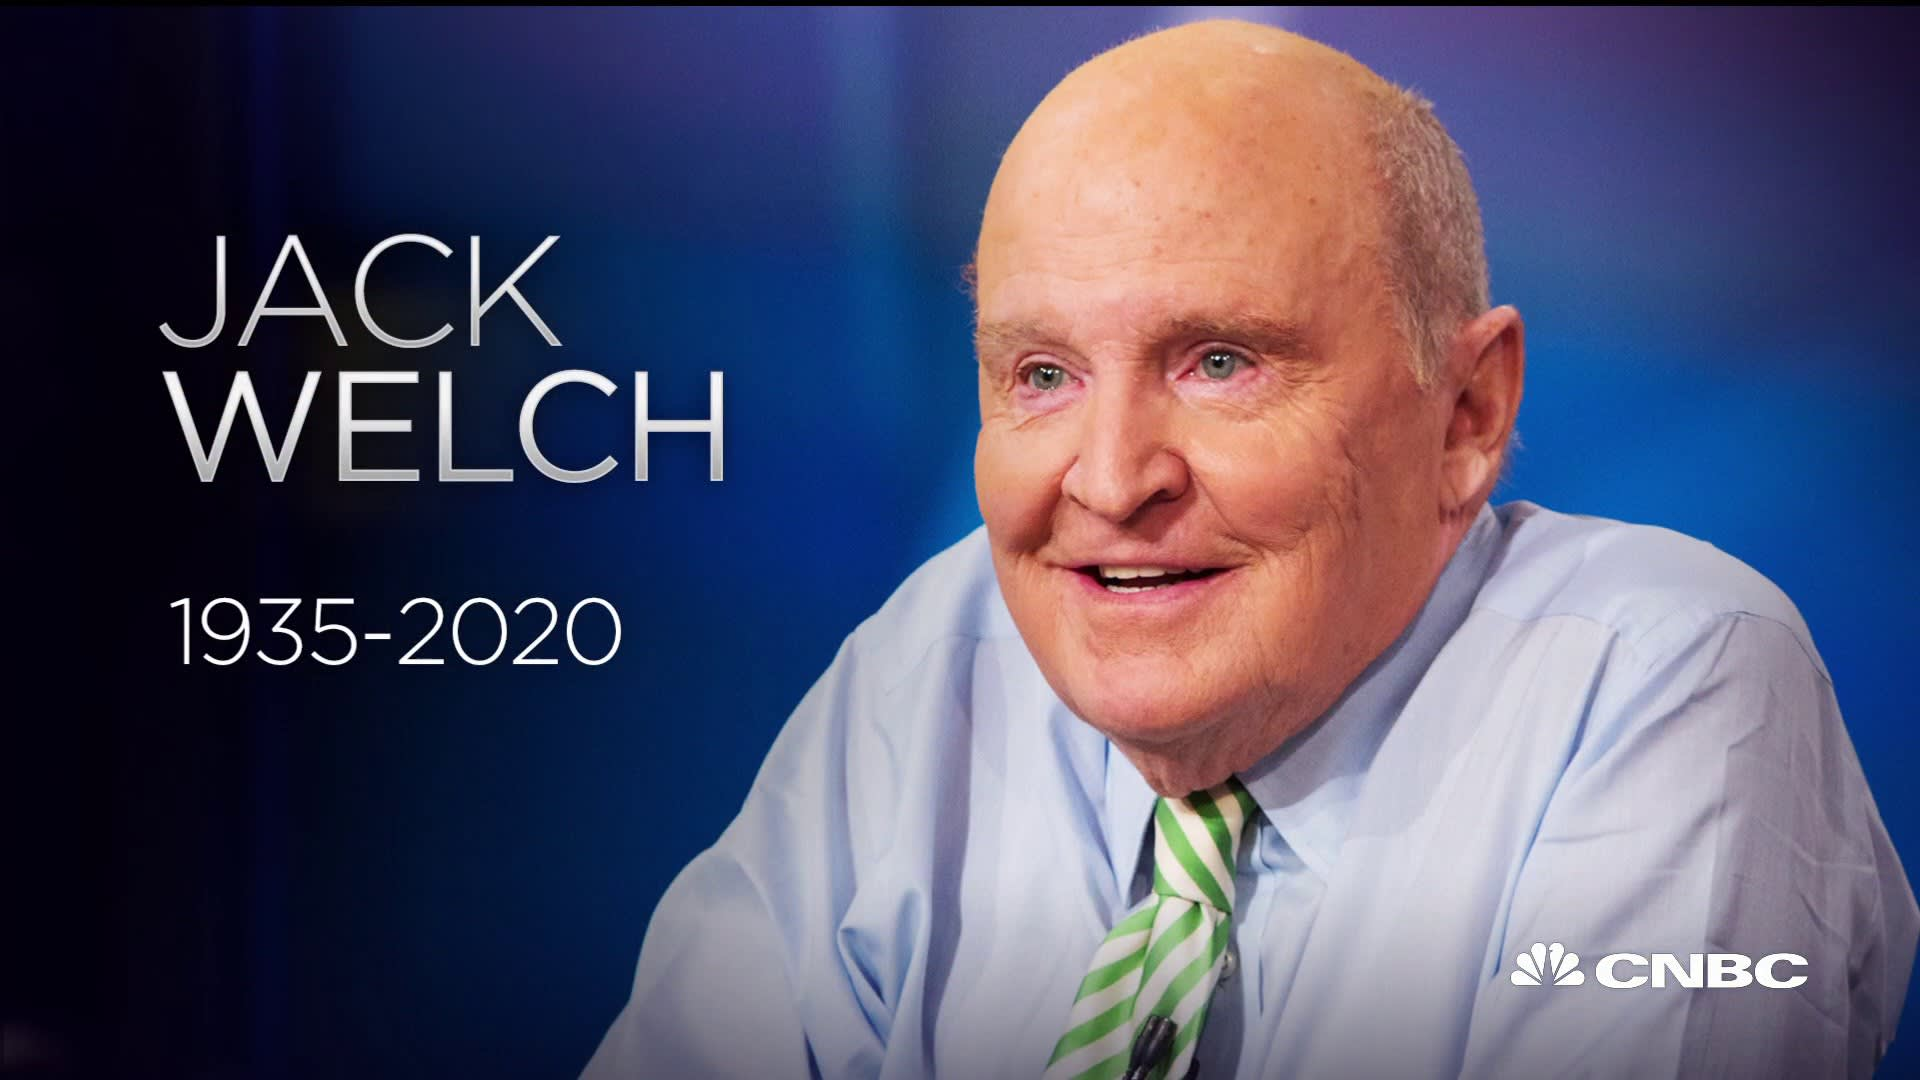 Jack Welch, Former Chairman And CEO of GE, dies at 84